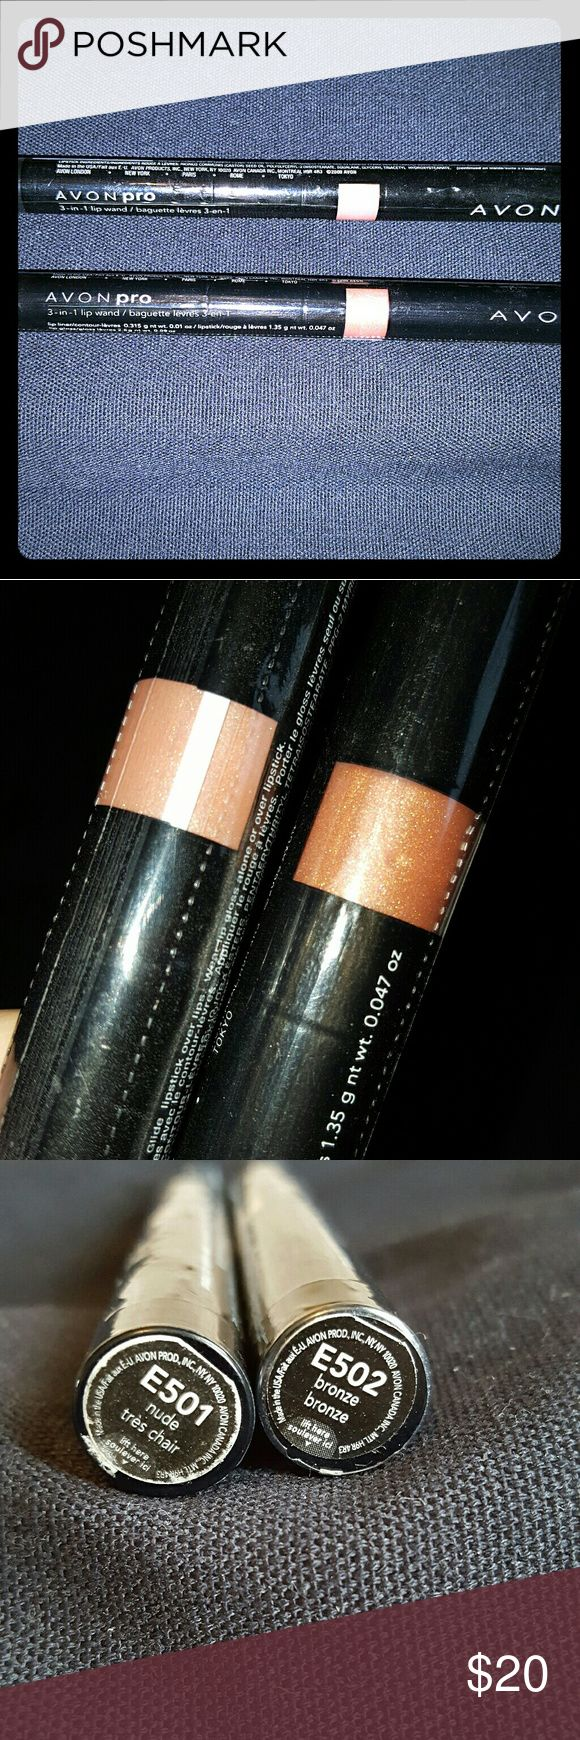 Avon Pro 3 in 1 Lip Wand Lipstick - Nude or Bronze Avon 3 in 1 Lip Wand - Nude or Bronze. $18 for both. If you only want 1 color I will separate for $10 each.   Rare and hard to find.   Brand new and Factory Sealed.  Full lip service. Perfect lip sync. Pre-coordinated shades for easy & beautiful lips! First define with lip liner. Then add luscious color with lipstick. Finish with glossy shine with lip gloss.  Lip Liner, .01 oz. net wt.  Lipstick, .047 oz. net wt.  Lip Gloss, .09 oz. net wt…